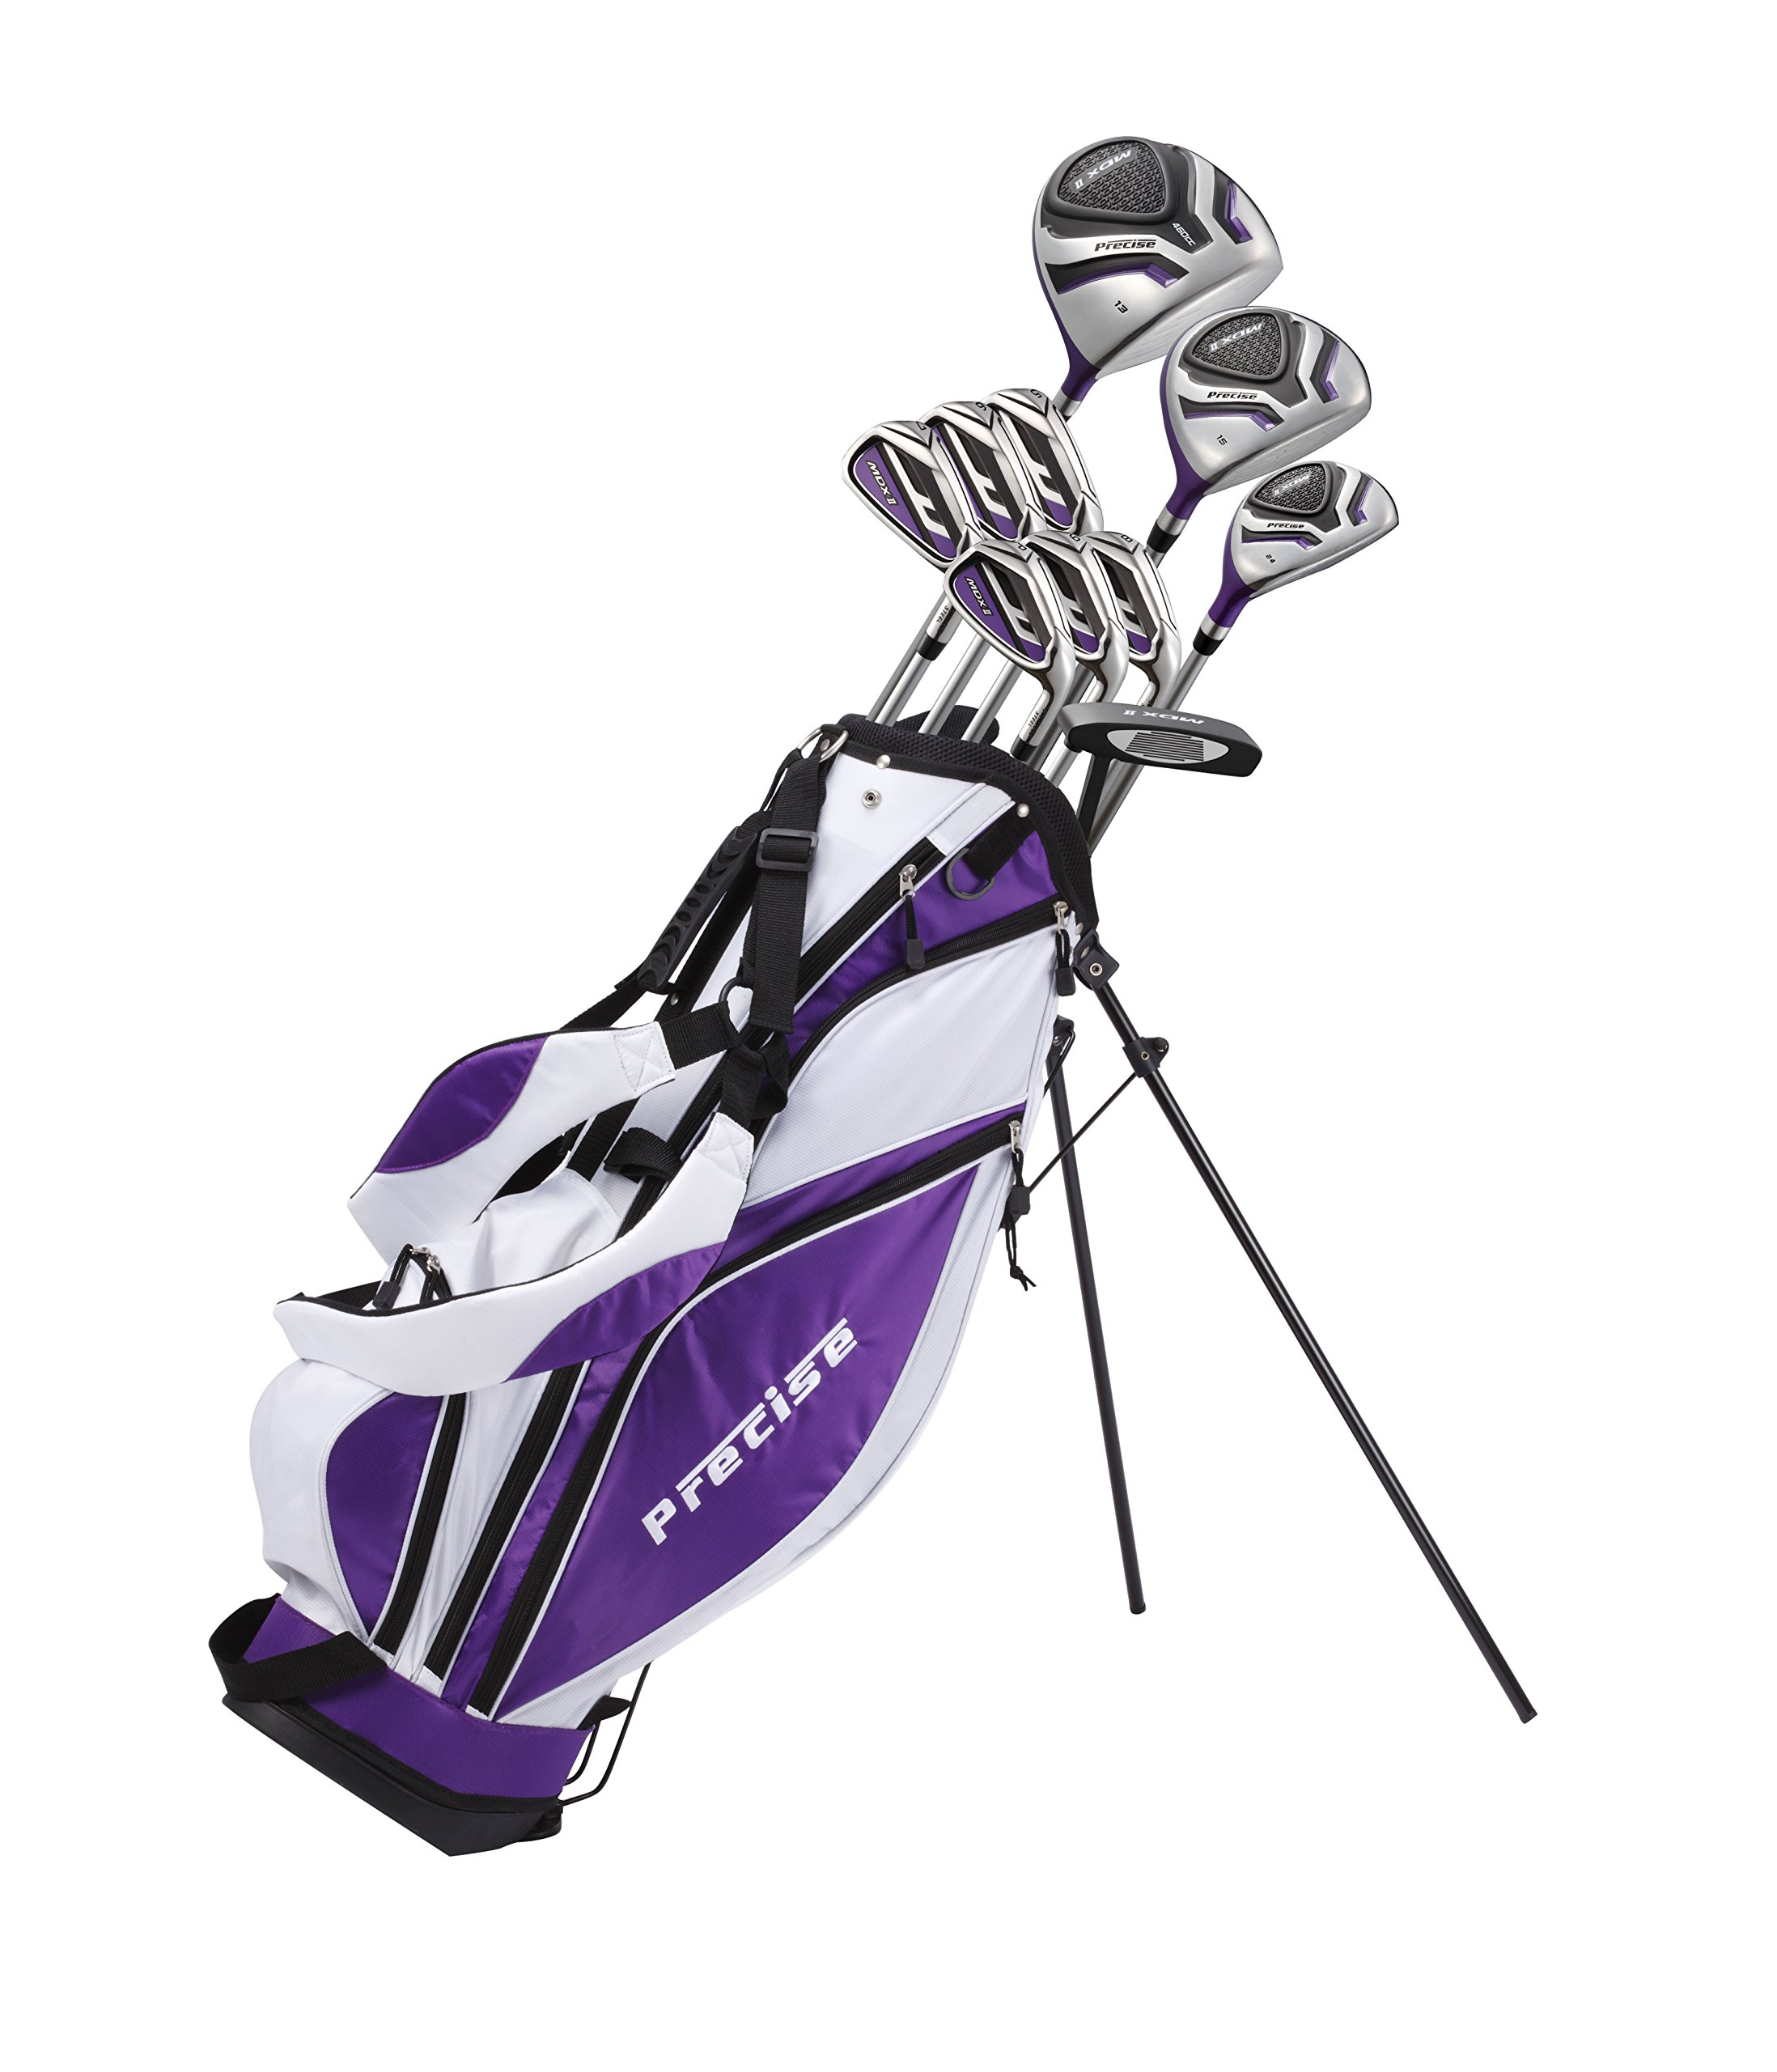 Precise Premium Ladies Womens Complete Golf Clubs Set Includes Driver, Fairway, Hybrid, S.S. 5-PW Irons, Putter, Stand Bag, 3 H/C's (Purple, Right Hand Petite Size -1'')